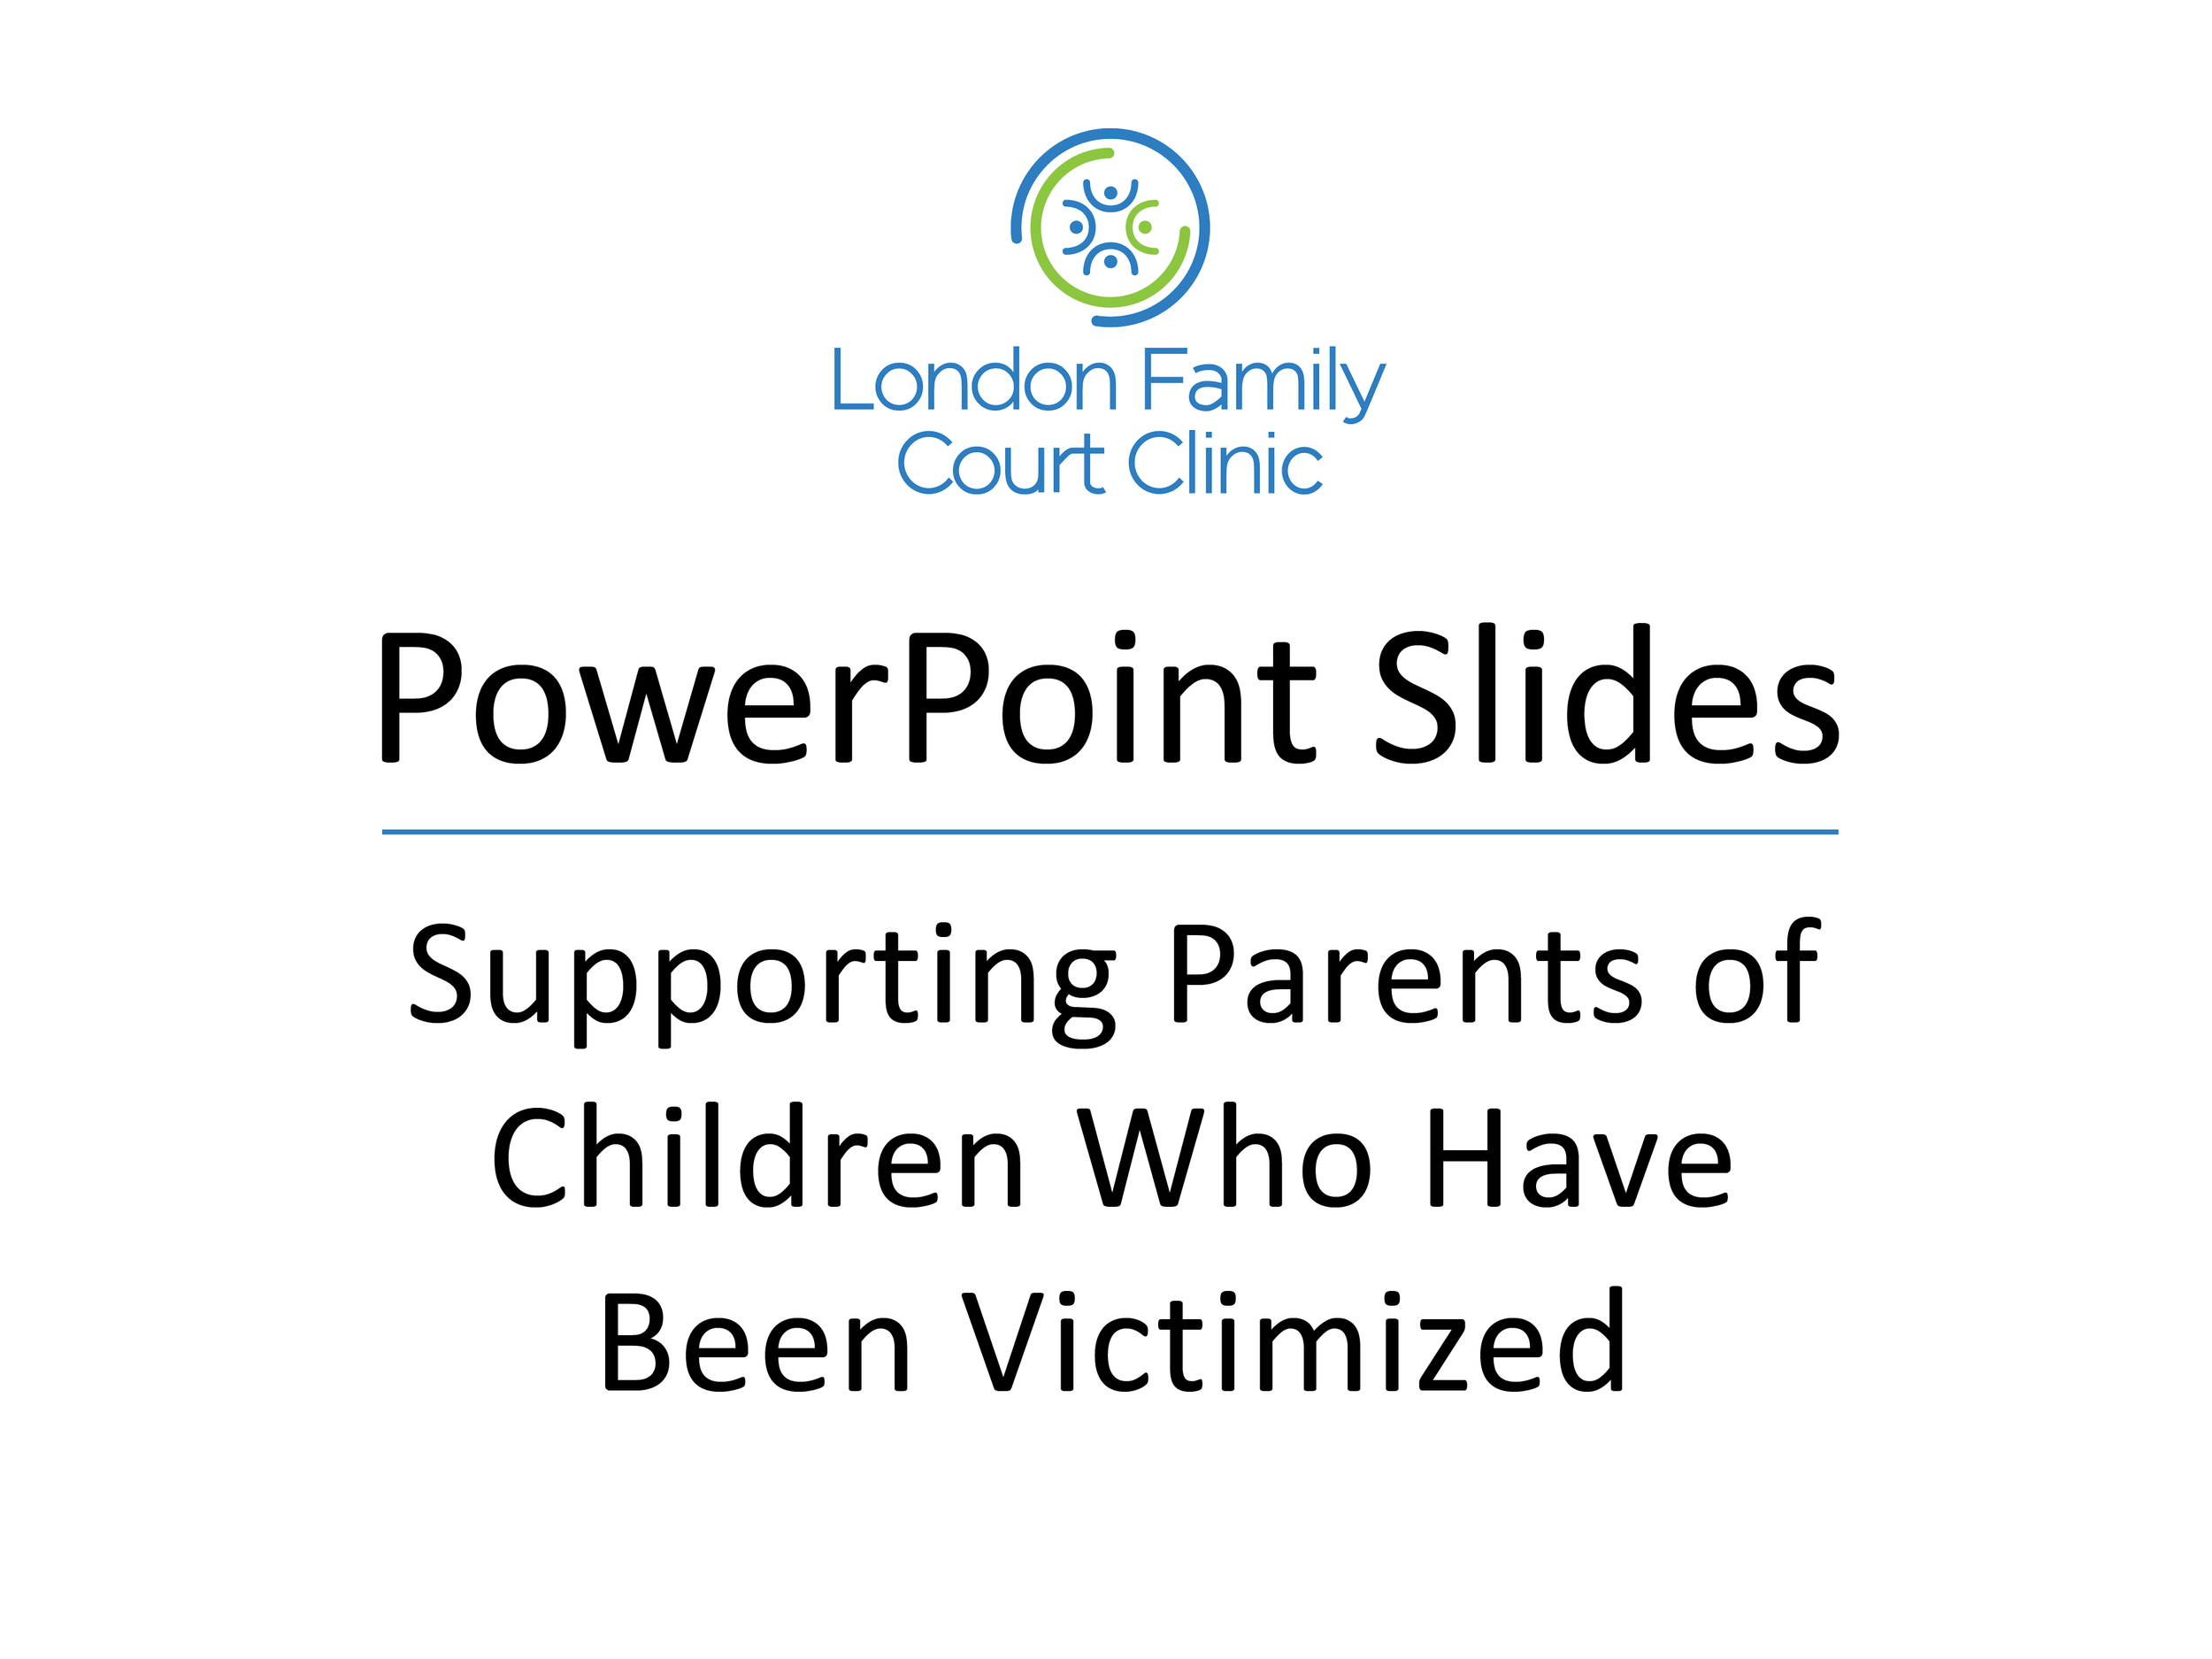 Supporting Parents of Children Who Have Been Victimized.png